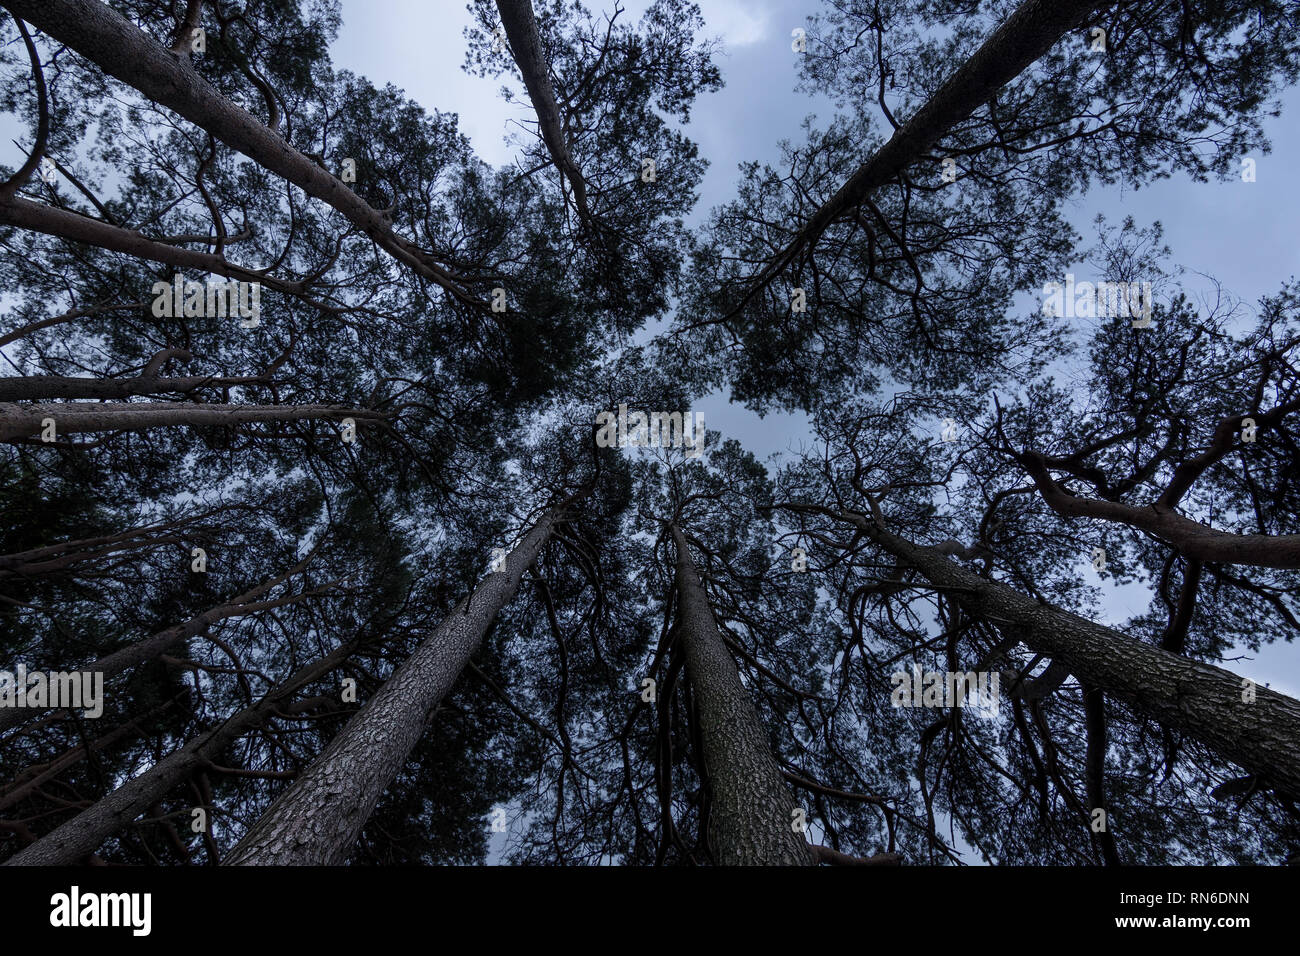 Tall straight narrow trees tower in to a cloudy dull sky. - Stock Image